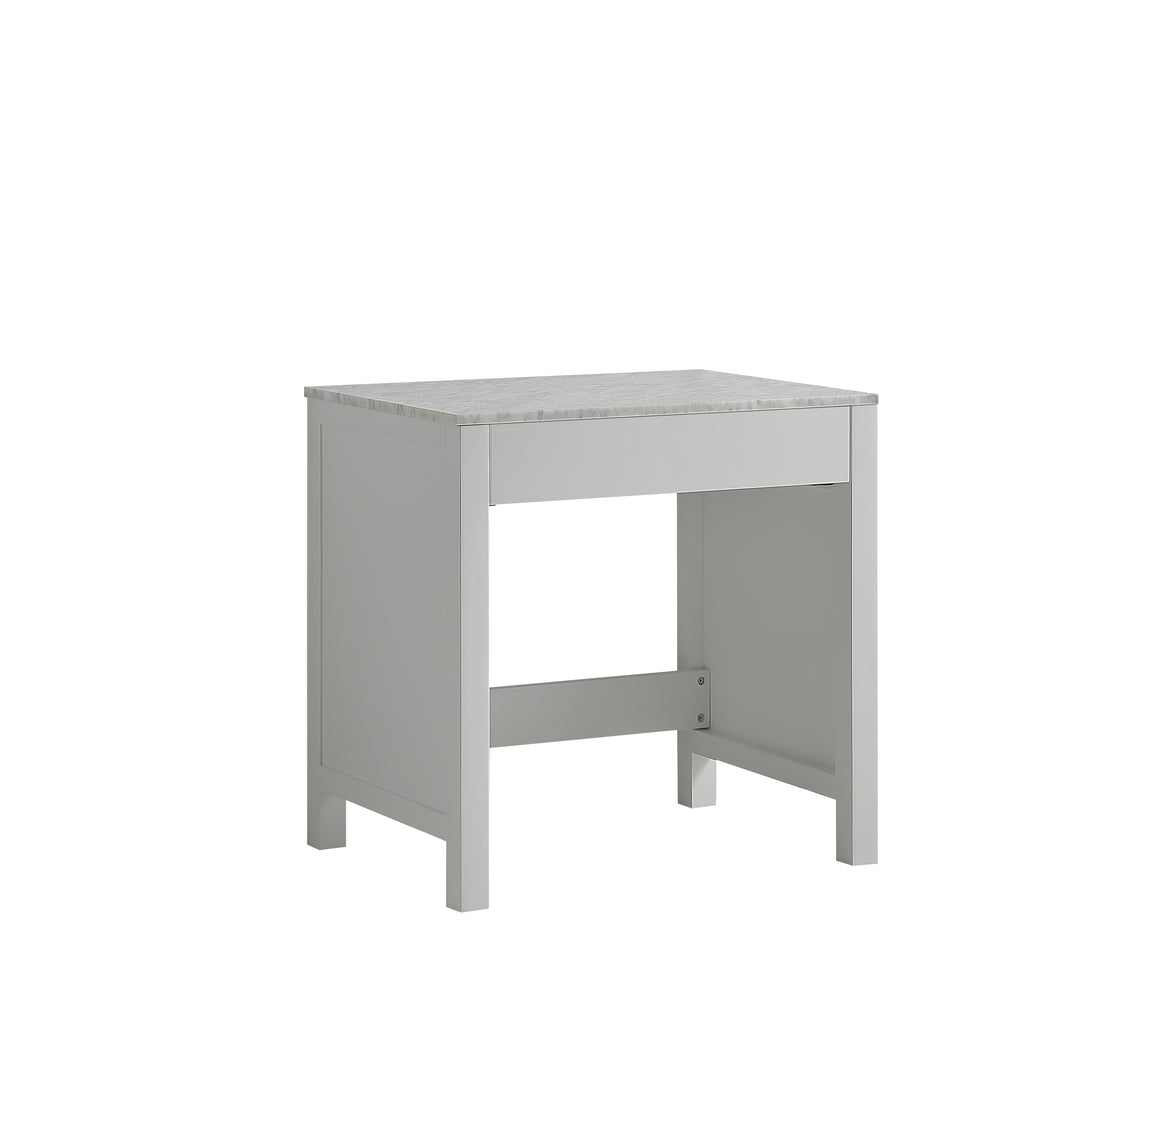 "Jacques 30"" Single Make-Up Table in White, White Carrera Marble Top"